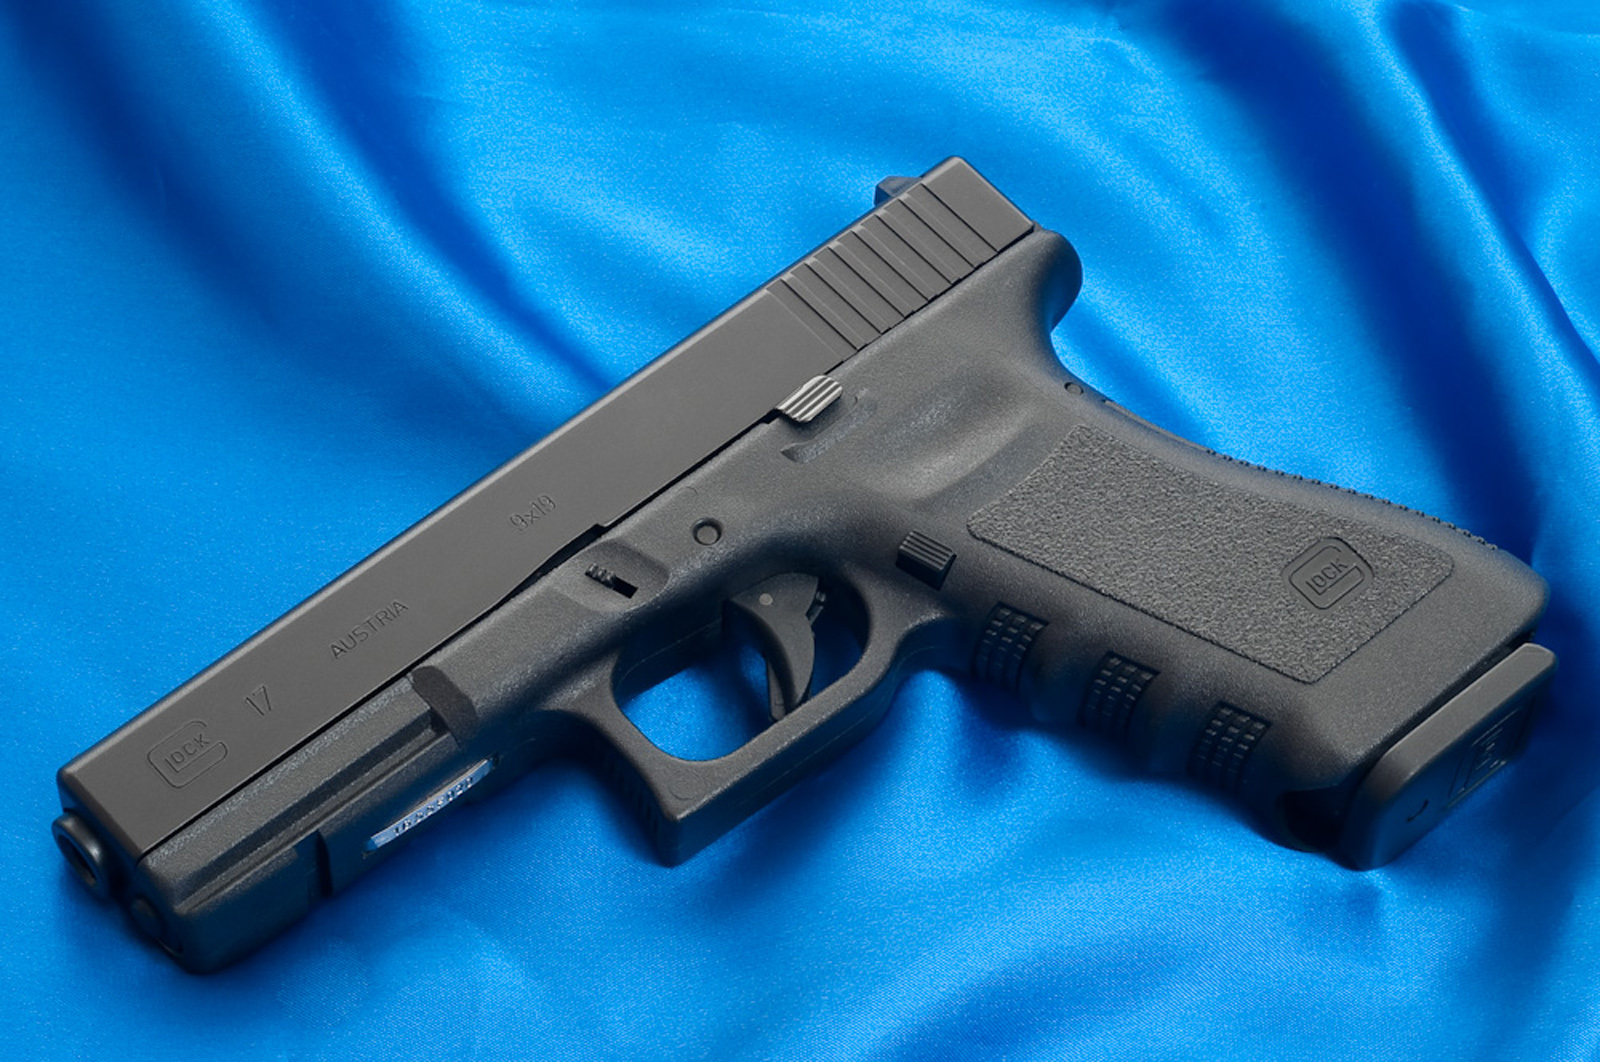 glock 17 hd wallpapers desktop wallpapers